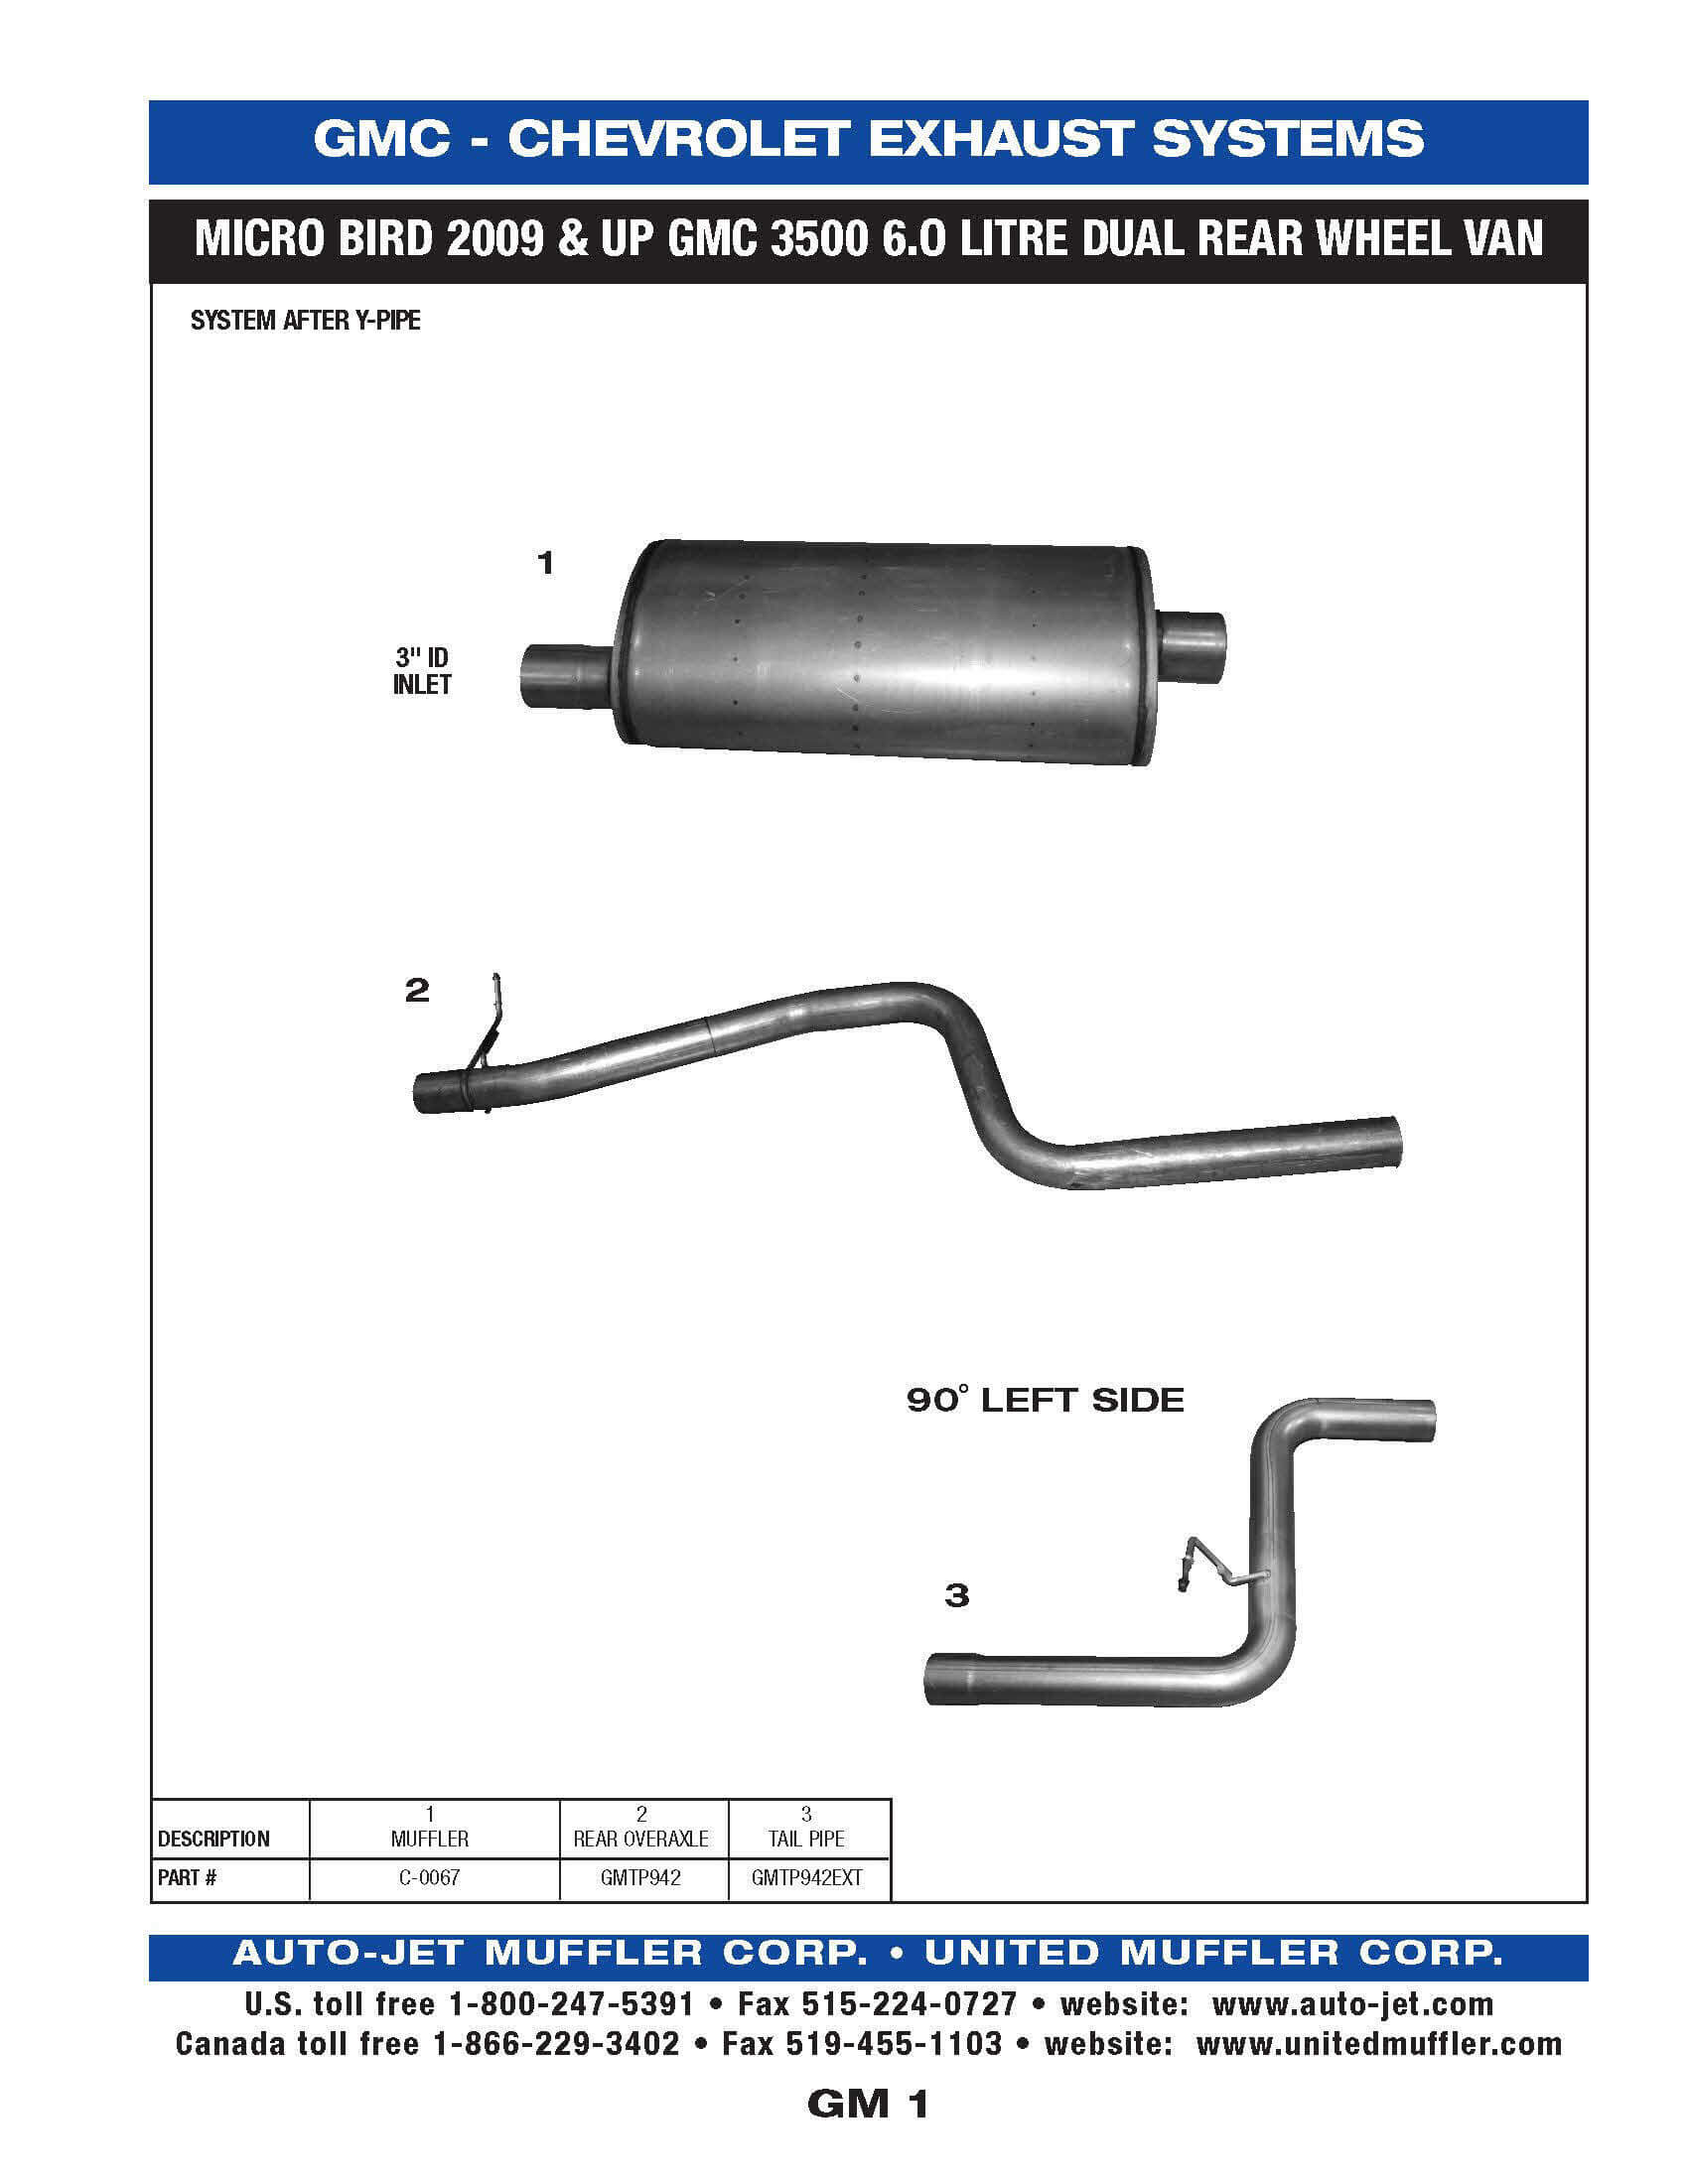 GM 1, 1998-UP 454-502 CI GAS BLUEBIRD CV200 GMC B7 CONVENTIONAL CHASSIS  ACCESSORIES